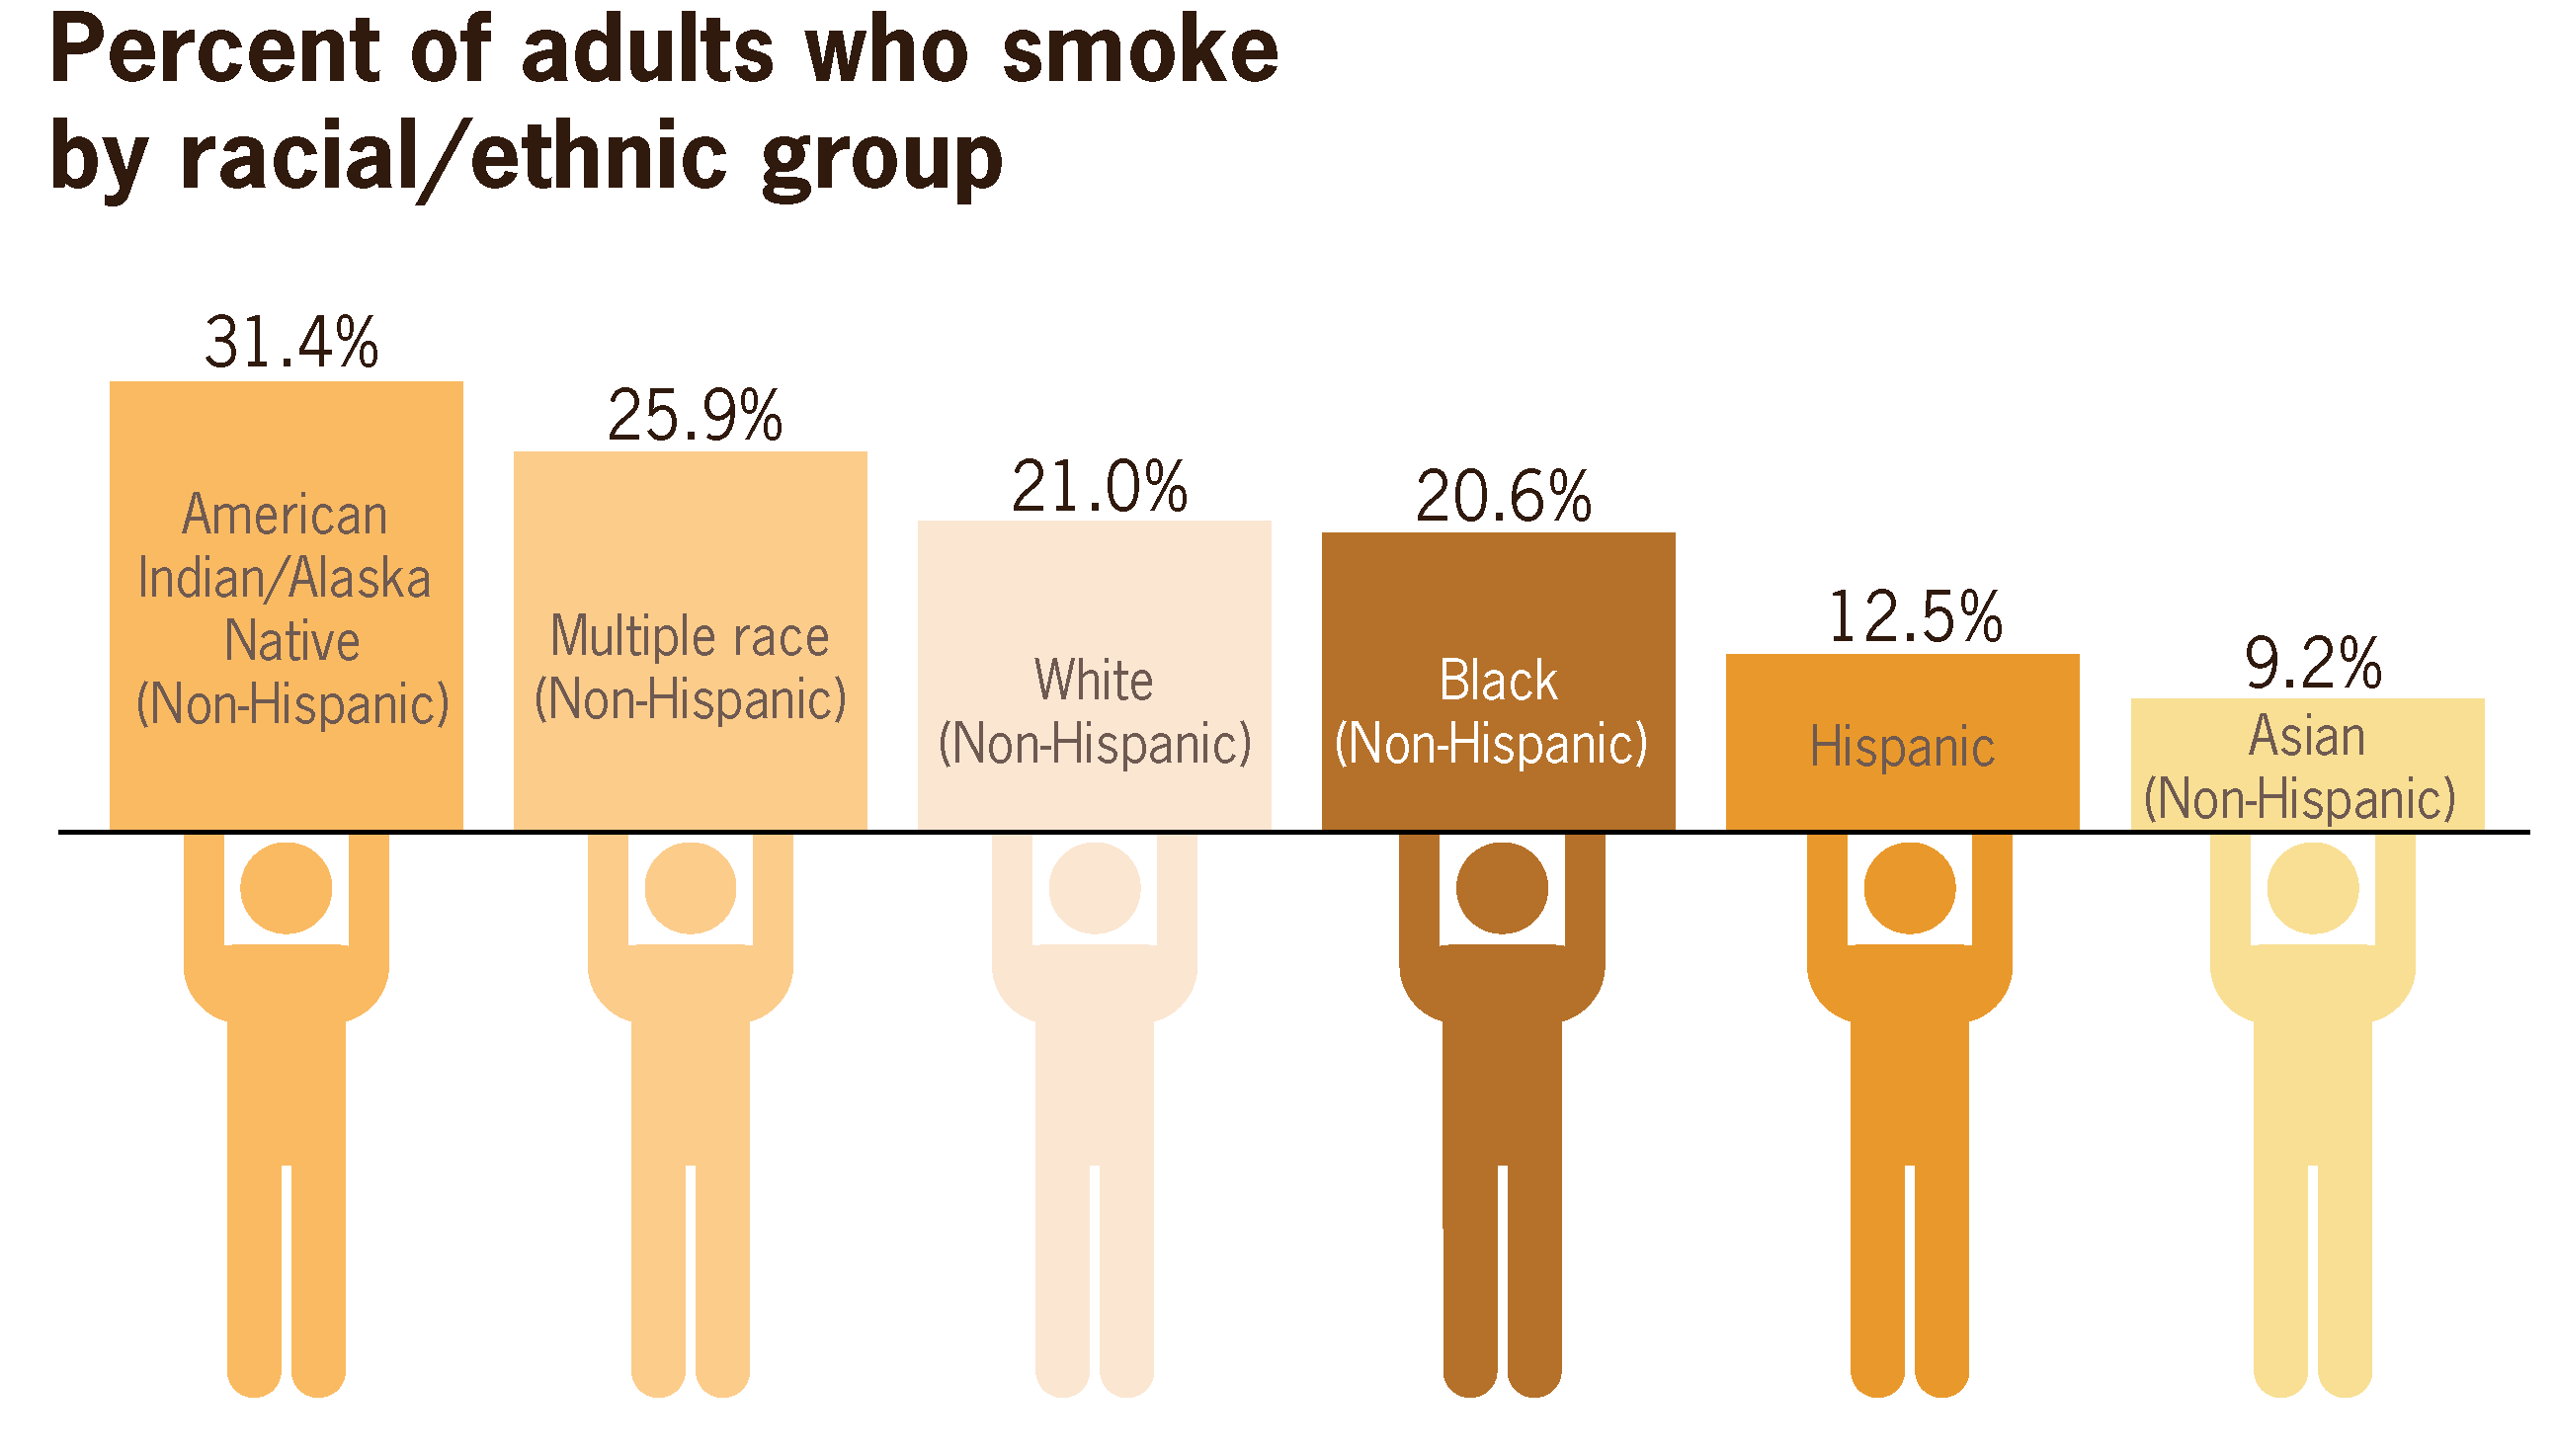 What percentage of adults have hiv